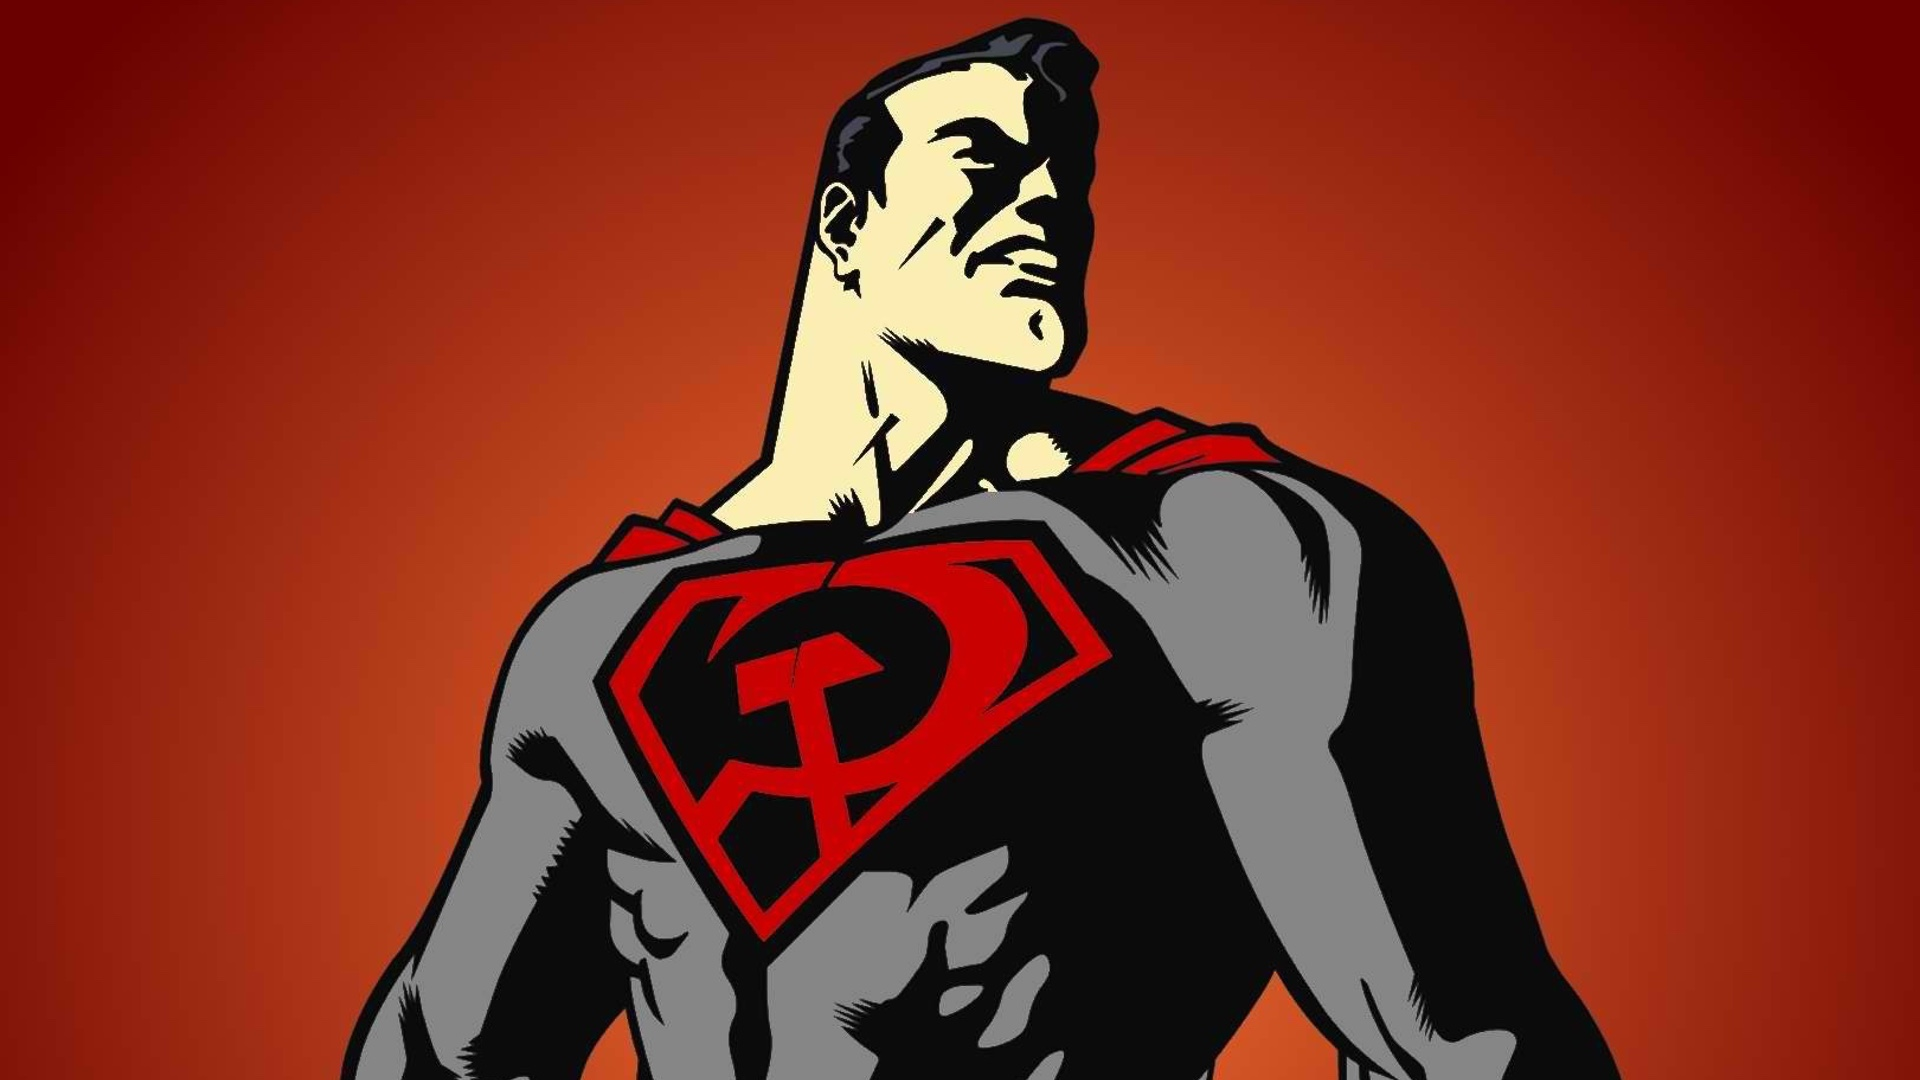 bruce-timm-is-looking-to-develop-superman-red-son-as-an-animated-film-social